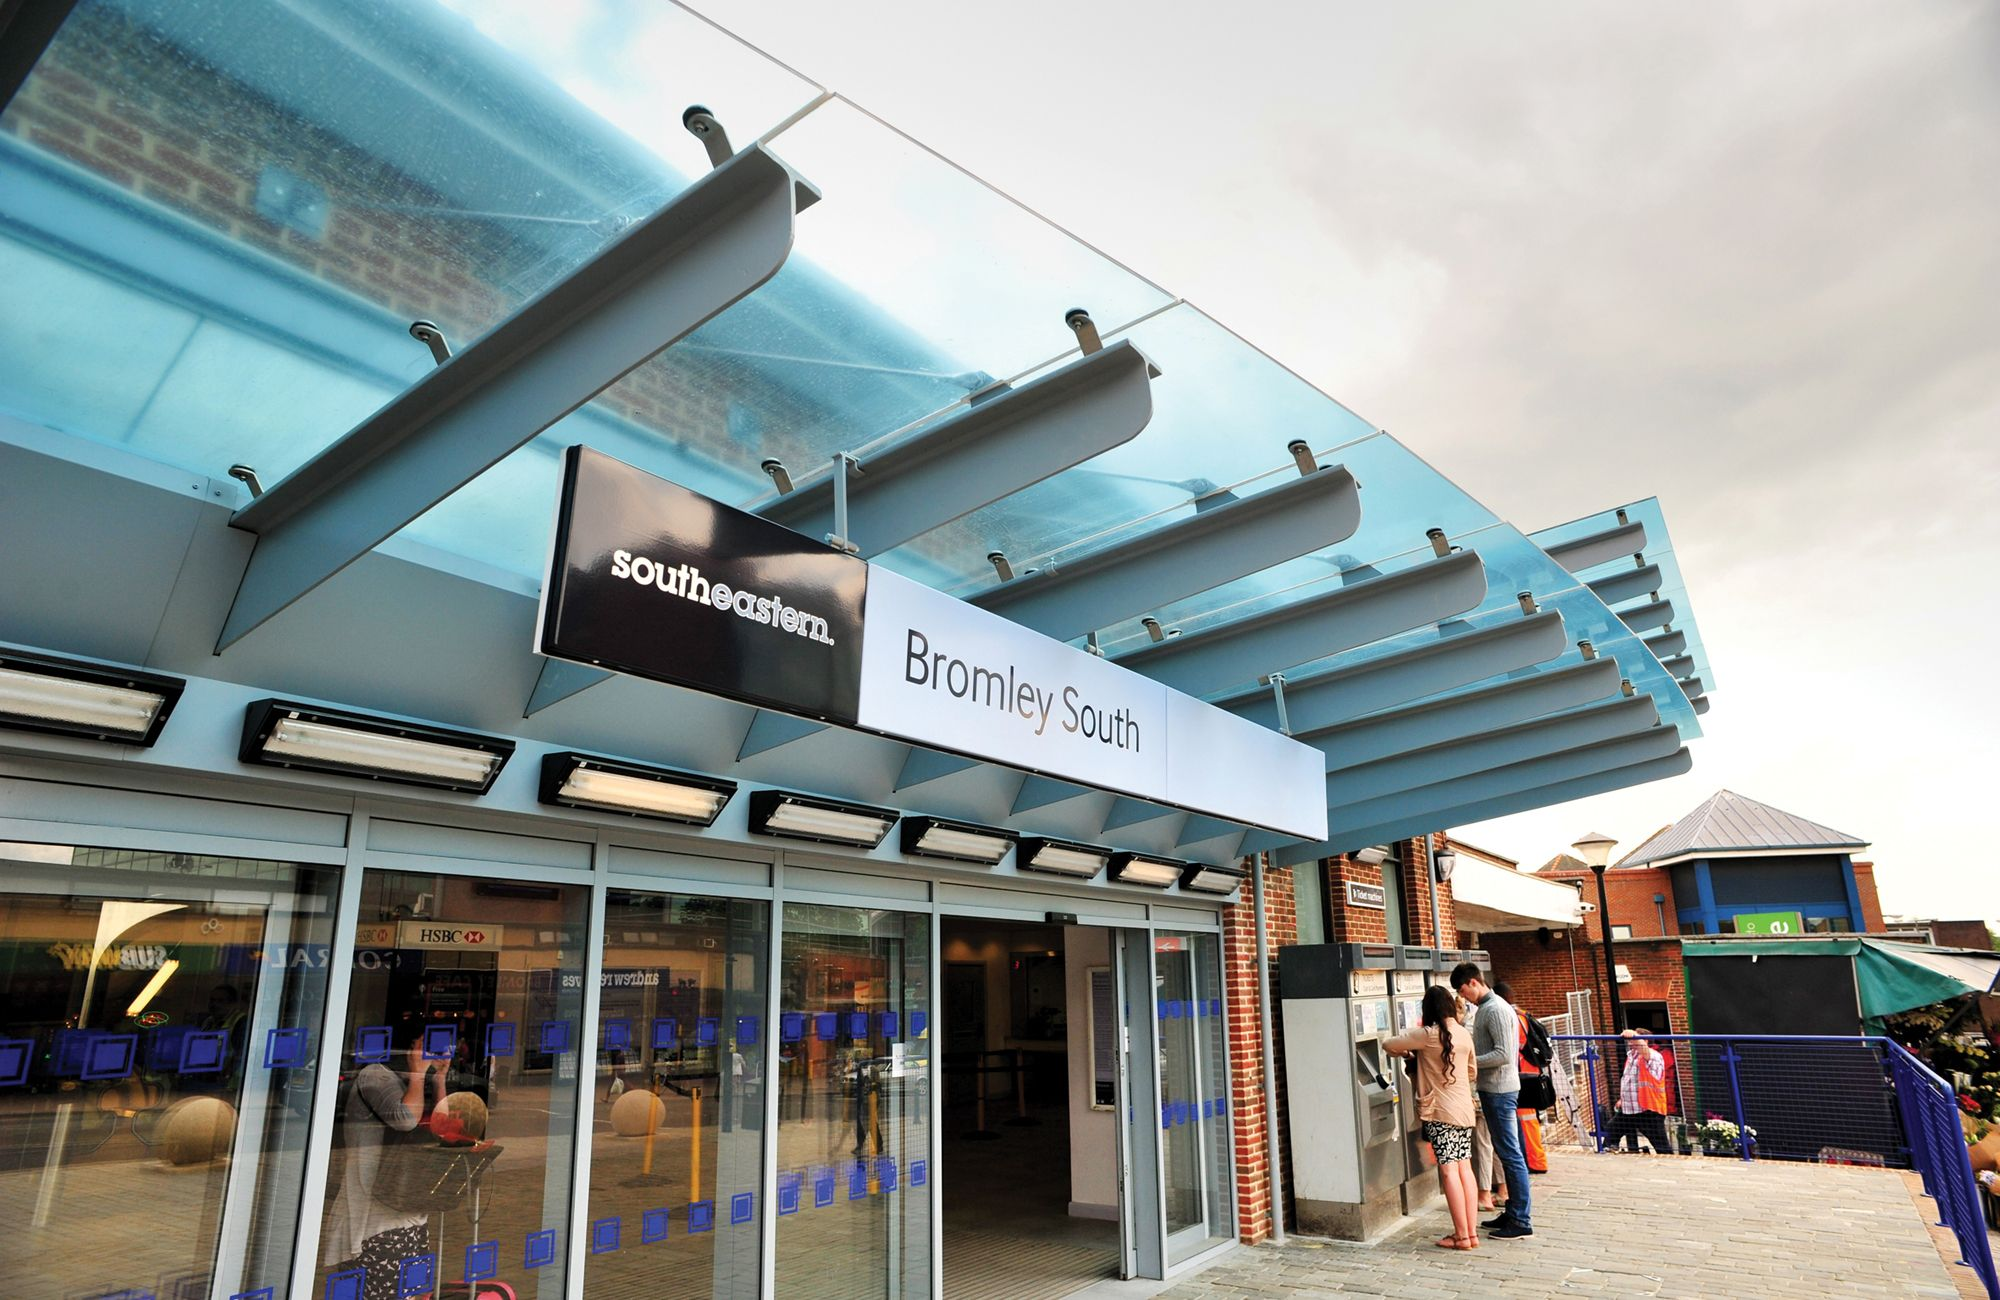 Wall Mounted Entrance Canopy | Bromley South Station - Glass Entrance Canopy u2026 & Wall Mounted Entrance Canopy | Bromley South Station - Glass ...